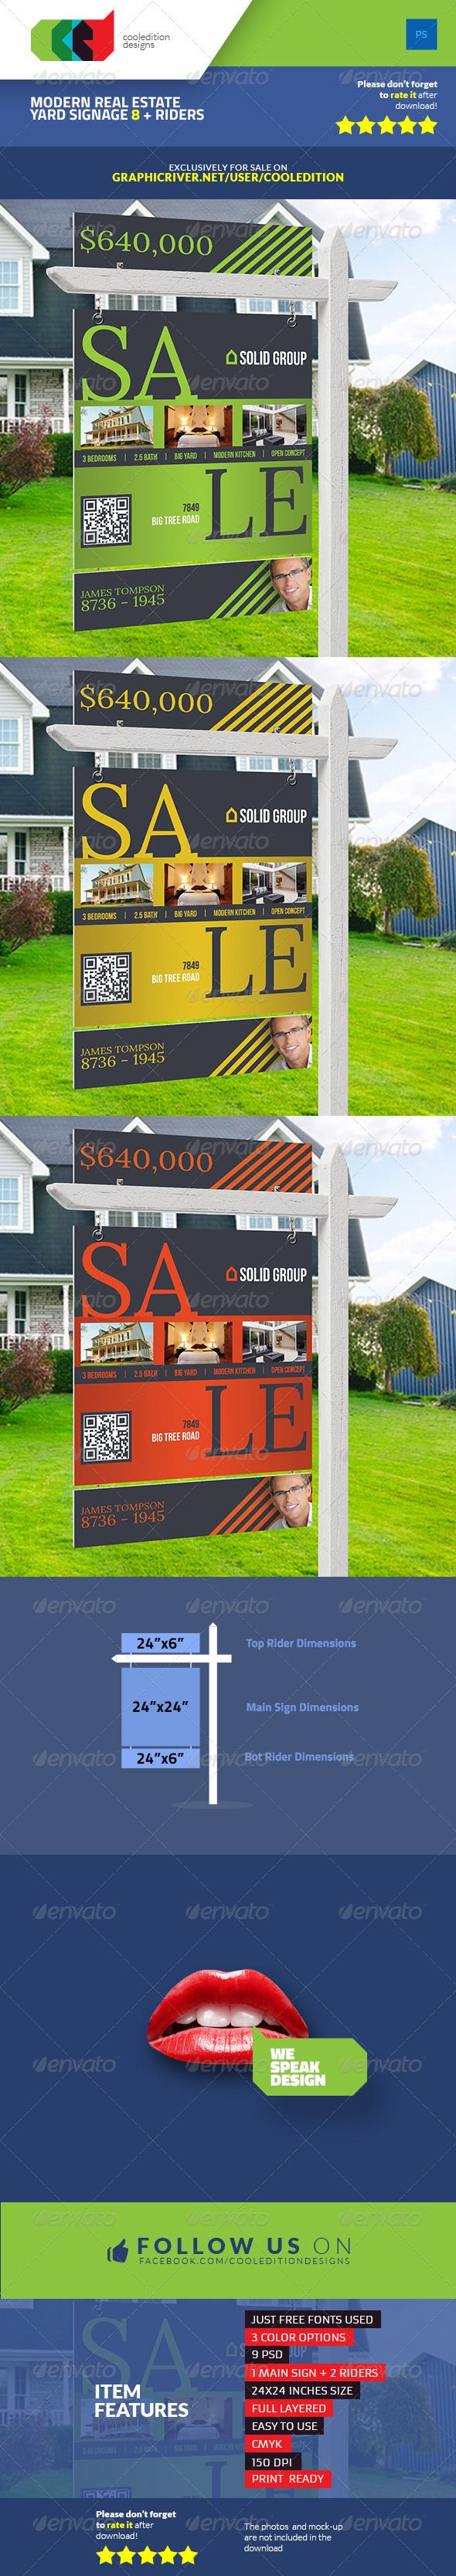 Modern Real Estate Yard Signage 8 + Riders — Photoshop PSD #yard #home • Available here → https://graphicriver.net/item/modern-real-estate-yard-signage-8-riders/7569906?ref=pxcr